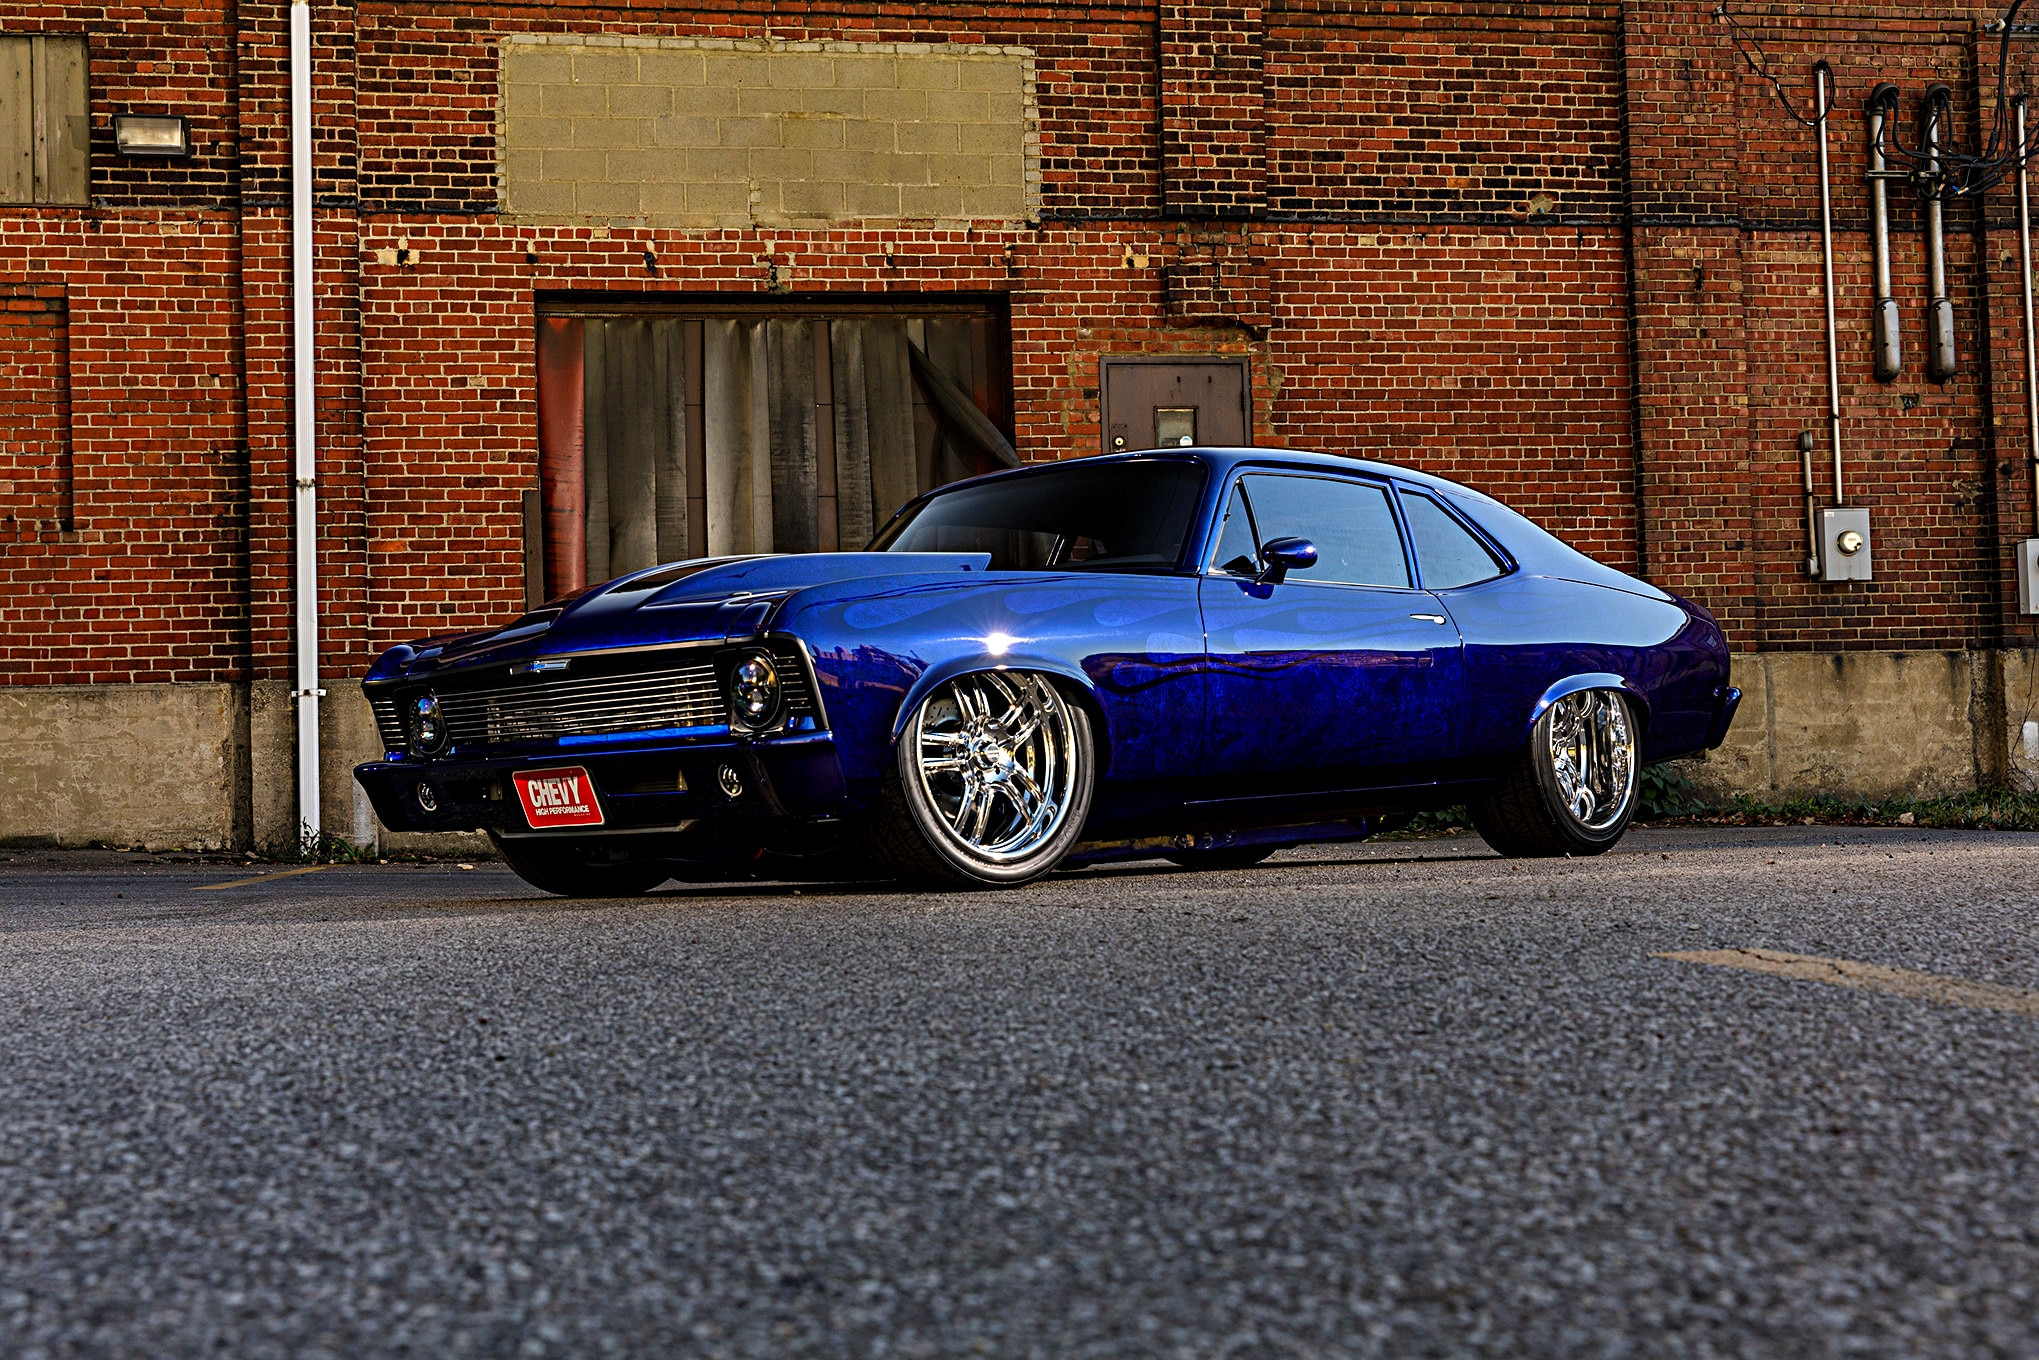 Custom-Built, Big-Block-Powered 1970 Nova Street Beast